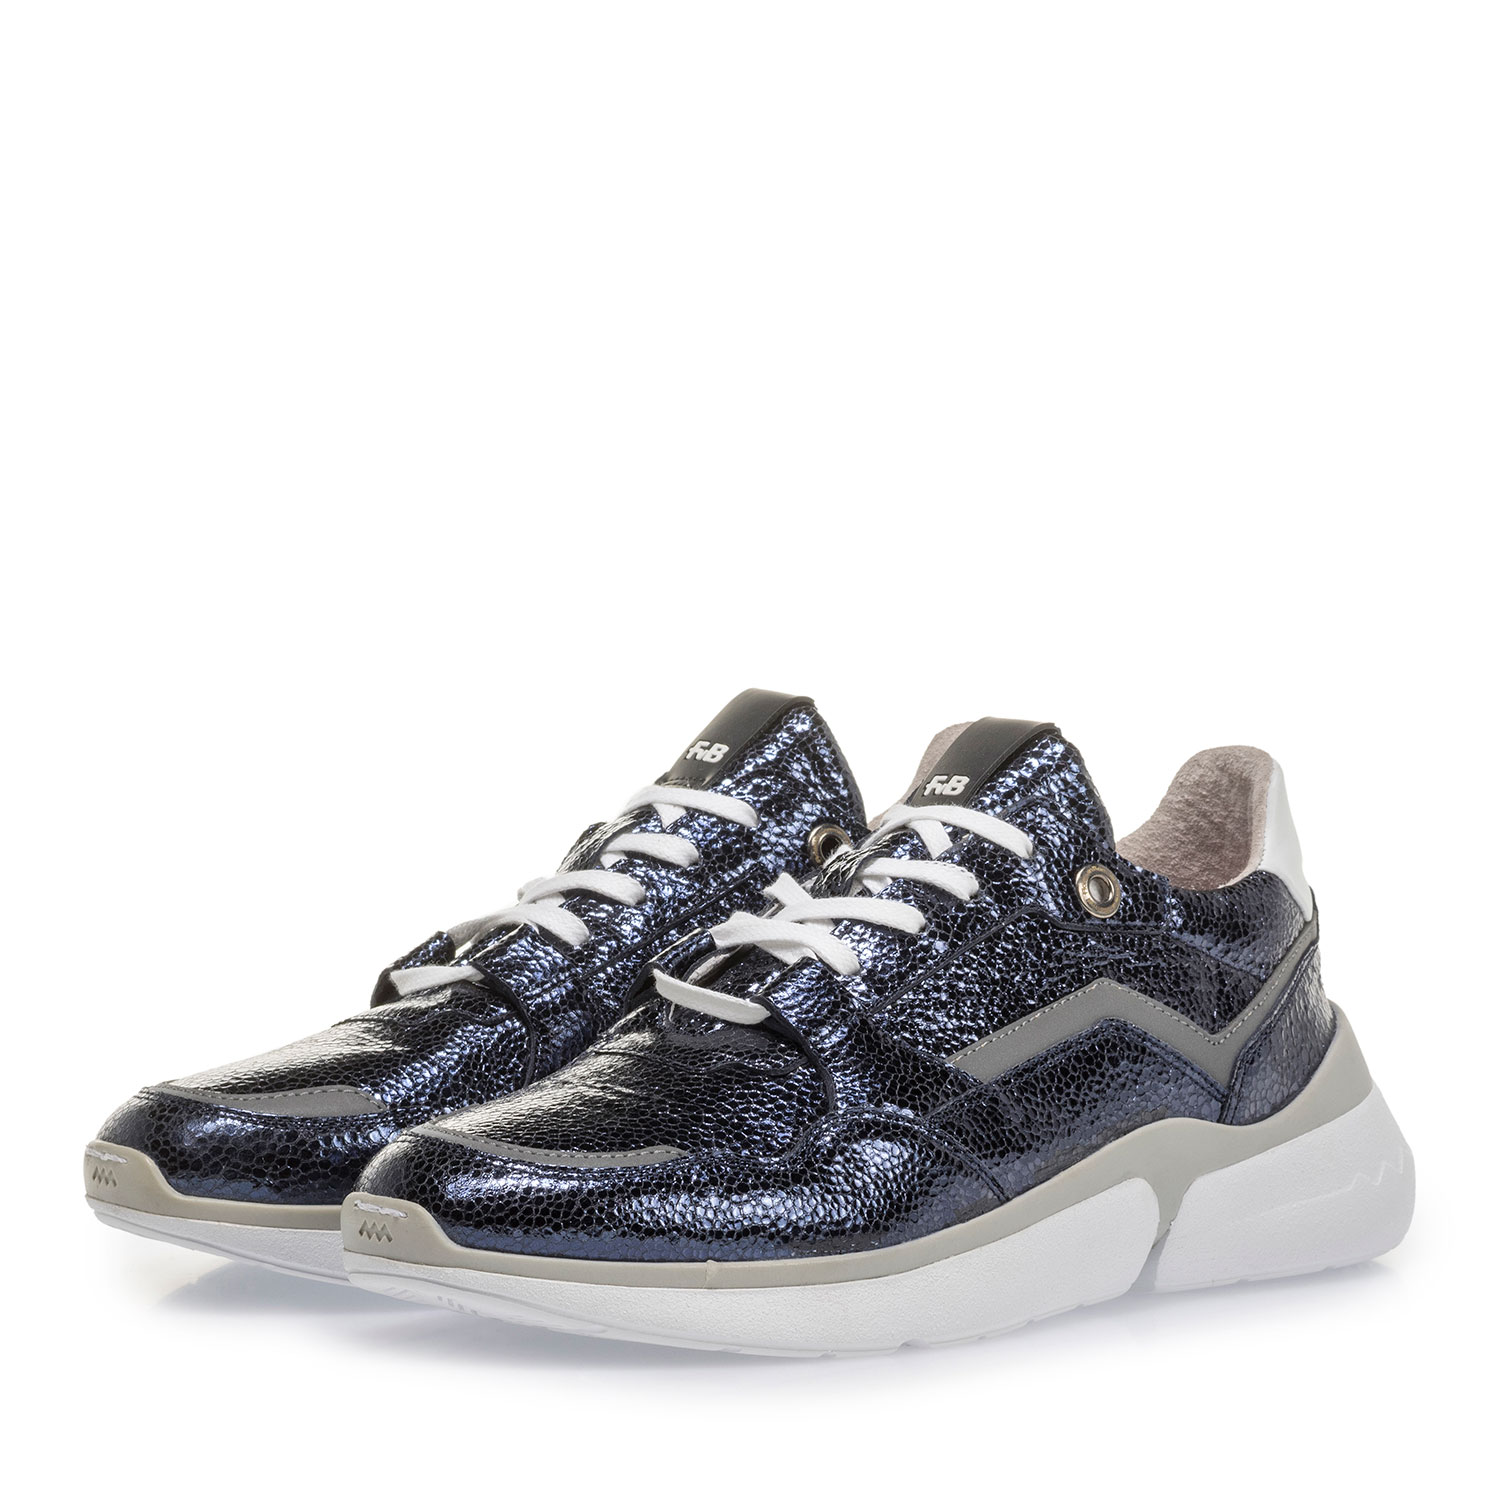 85291/17 - Dark blue leather sneaker with metallic print